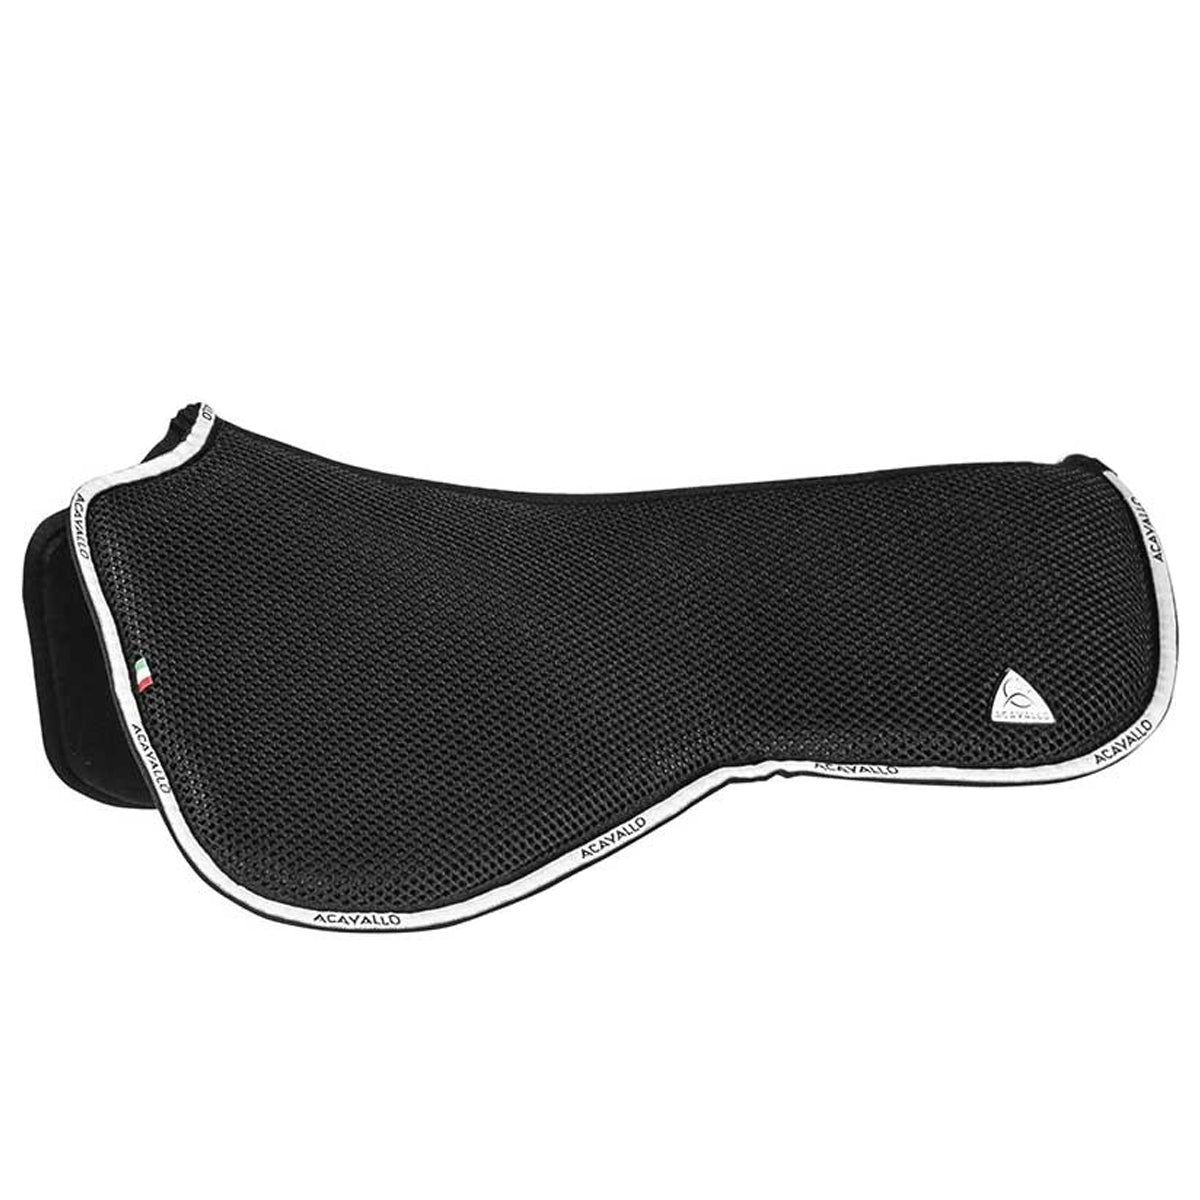 Acavallo Dressage Withers Free Double Face 3D Spacer & Memory Foam Close Contact Half Pad